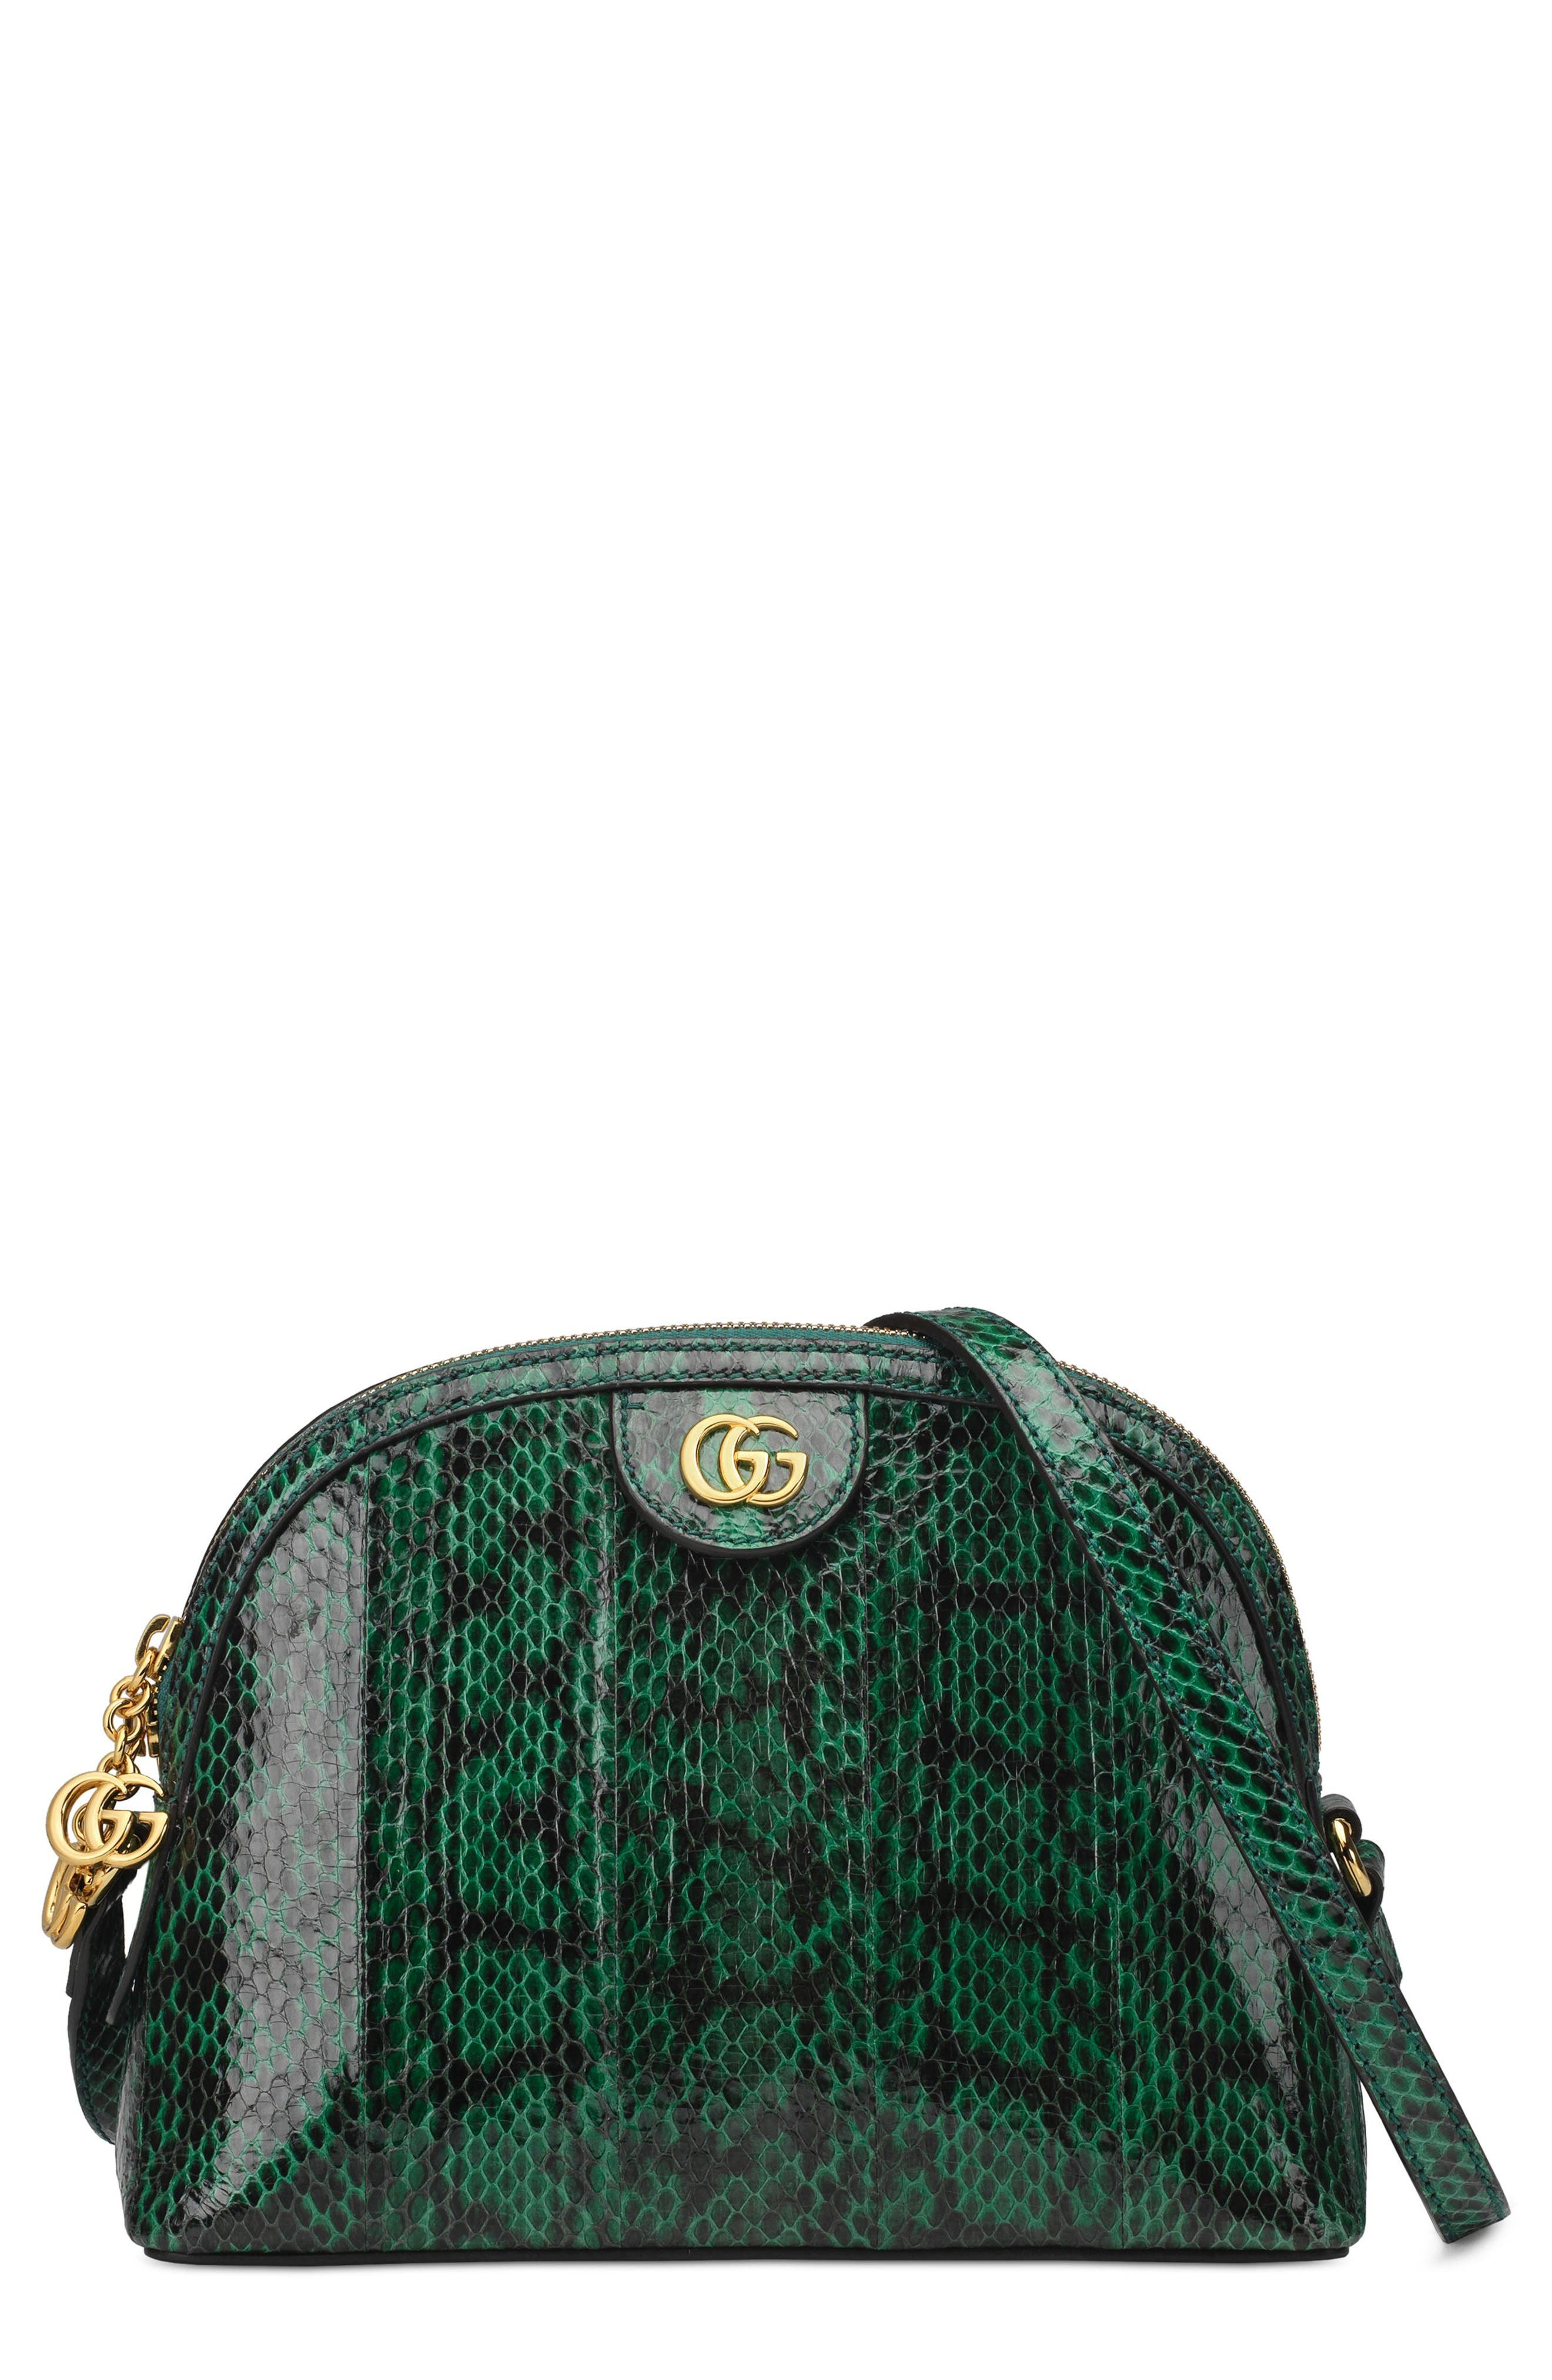 Small Ophidia Genuine Snakeskin Dome Satchel,                             Main thumbnail 1, color,                             EMERALD